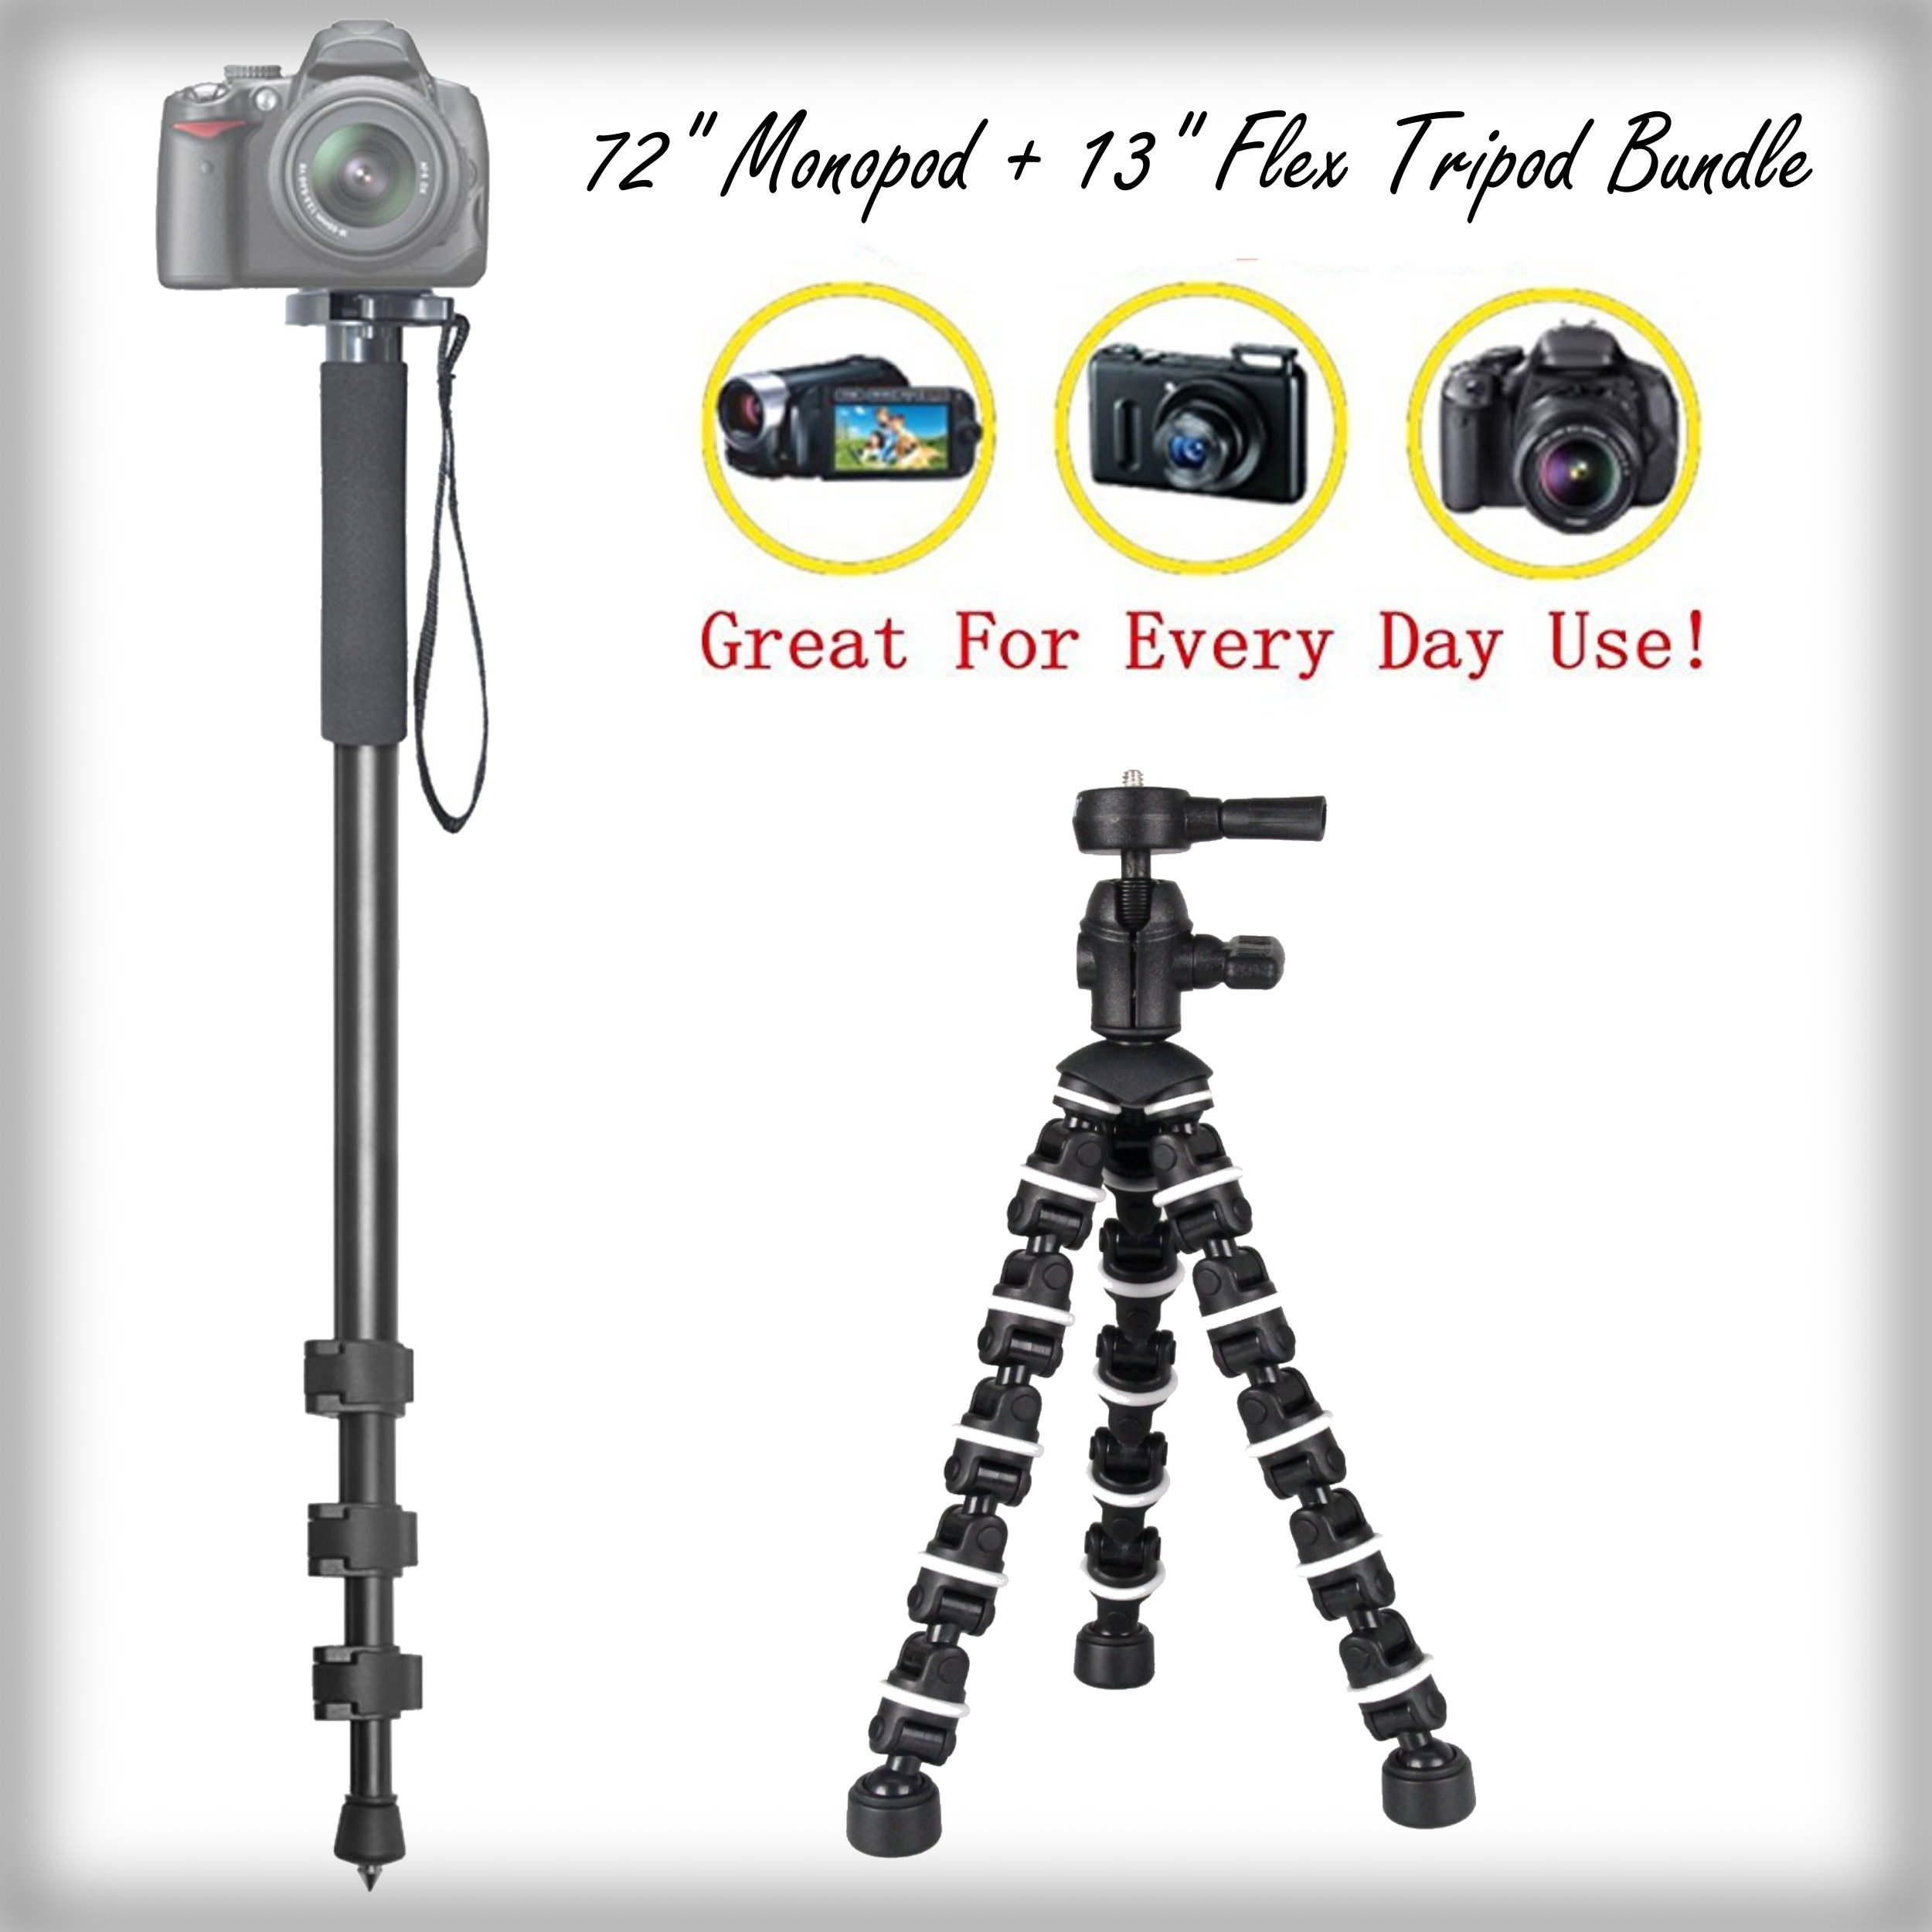 Versatile Full Sized 72'' Monopod + 13'' Rugged Flexible Tripod Bundle for Canon EOS Rebel T6i (EOS 750D / Kiss X8i) - Portable Tripod, Flexible Legs Camera Support